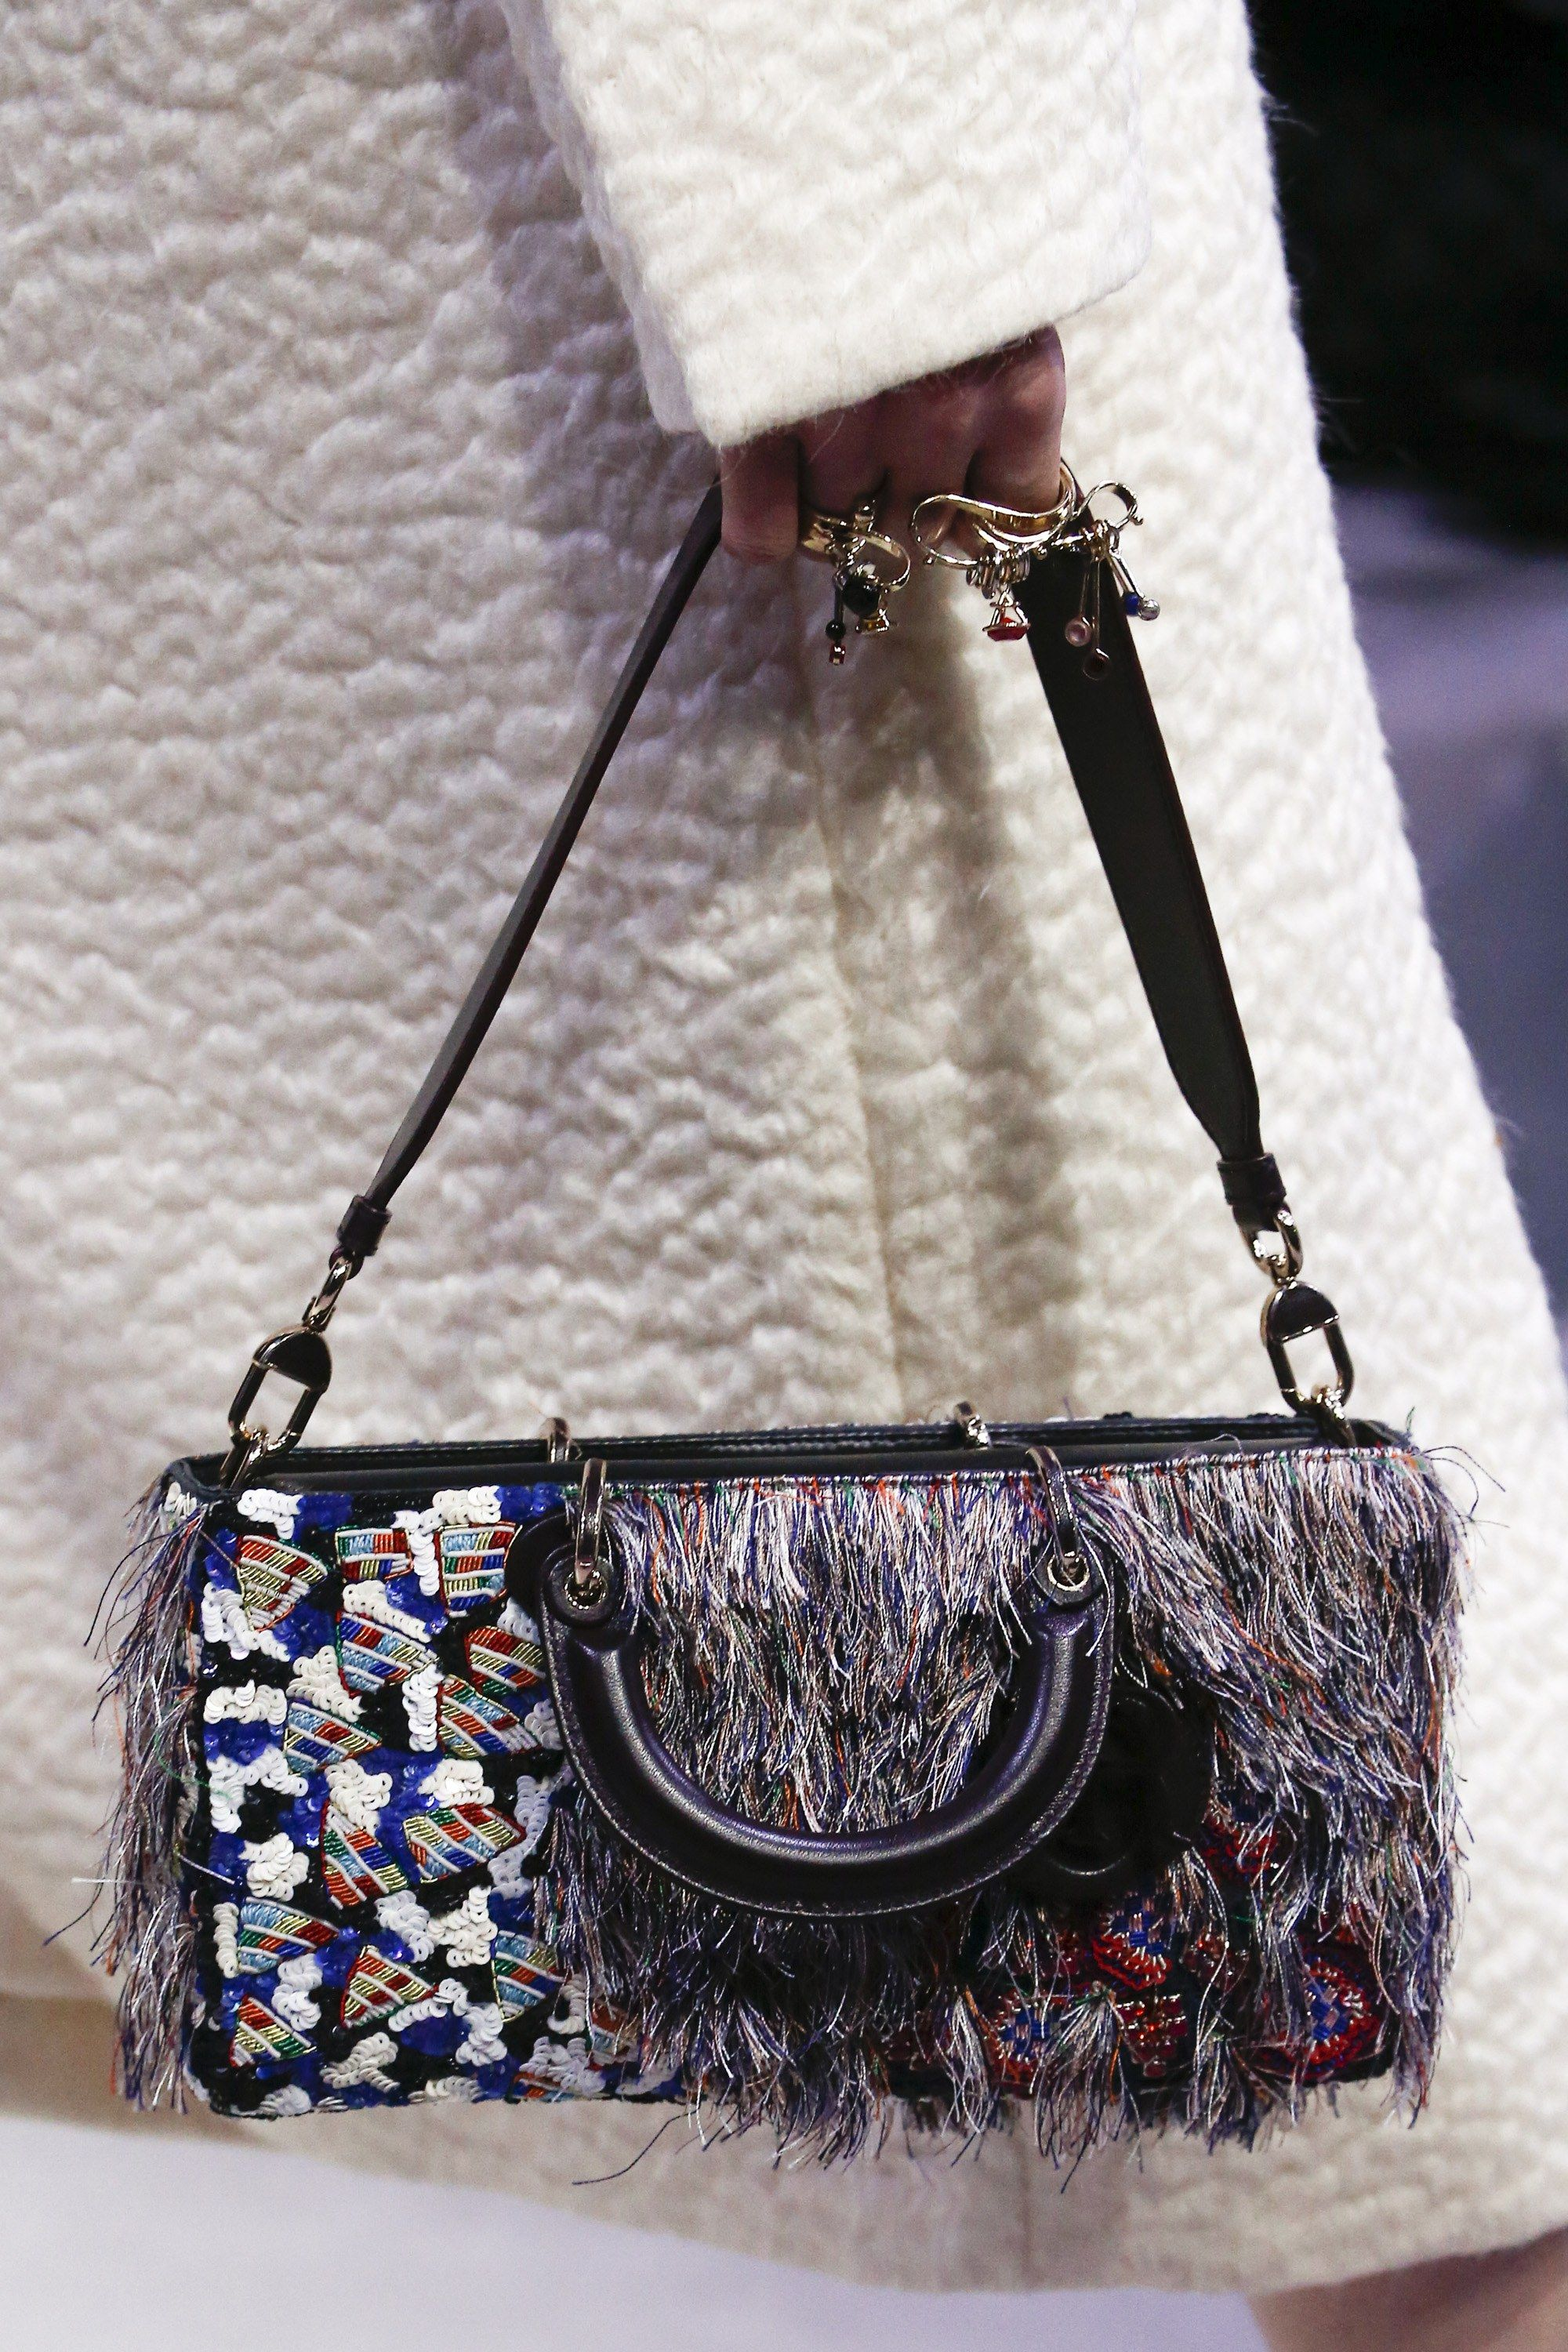 Christian Dior Fall 2016 Ready-to-Wear Accessories Photos - Vogue